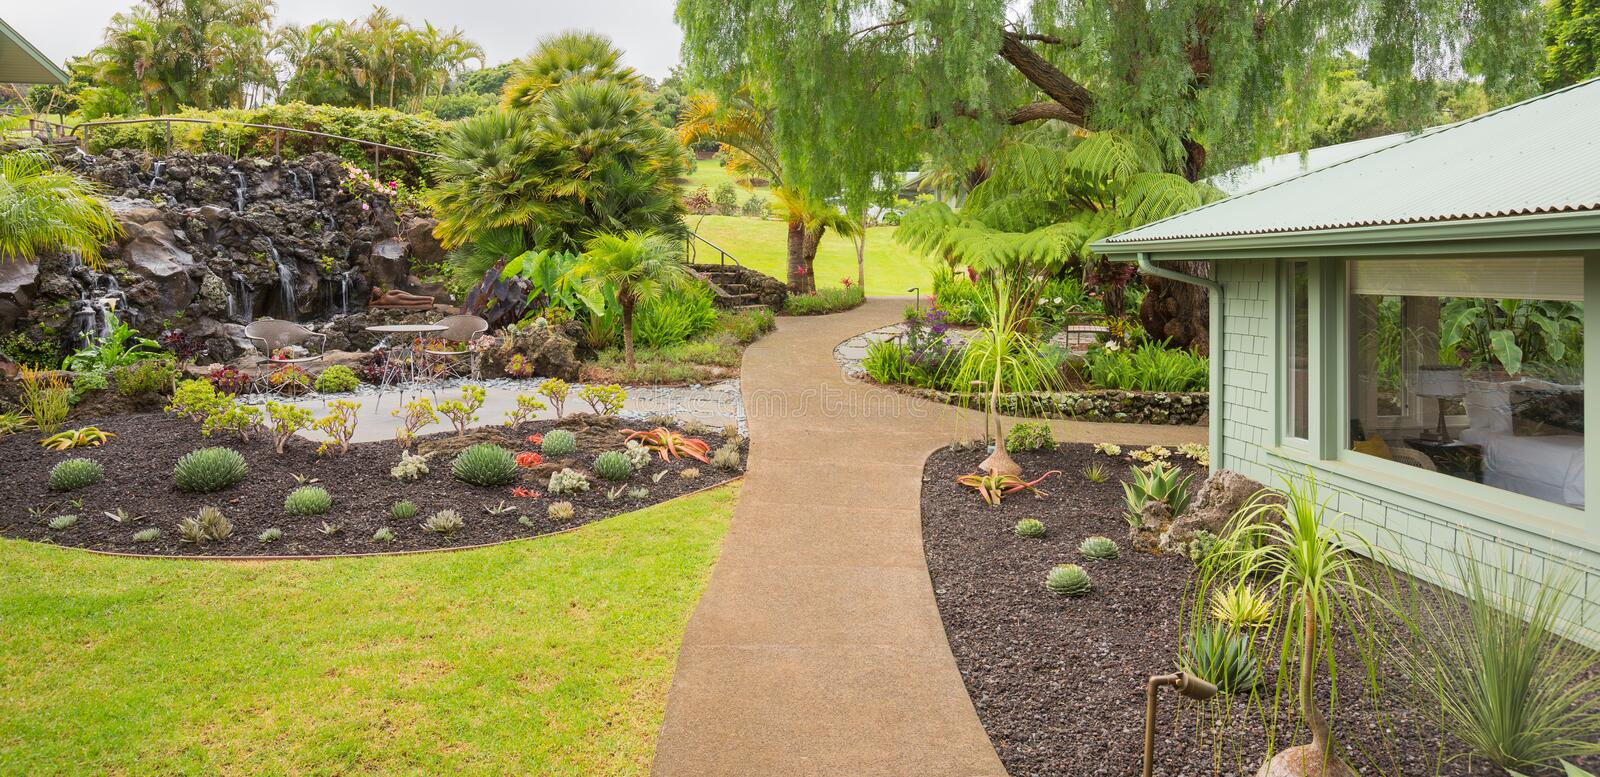 Download beautiful garden outside of a modern house stock image image of passage home